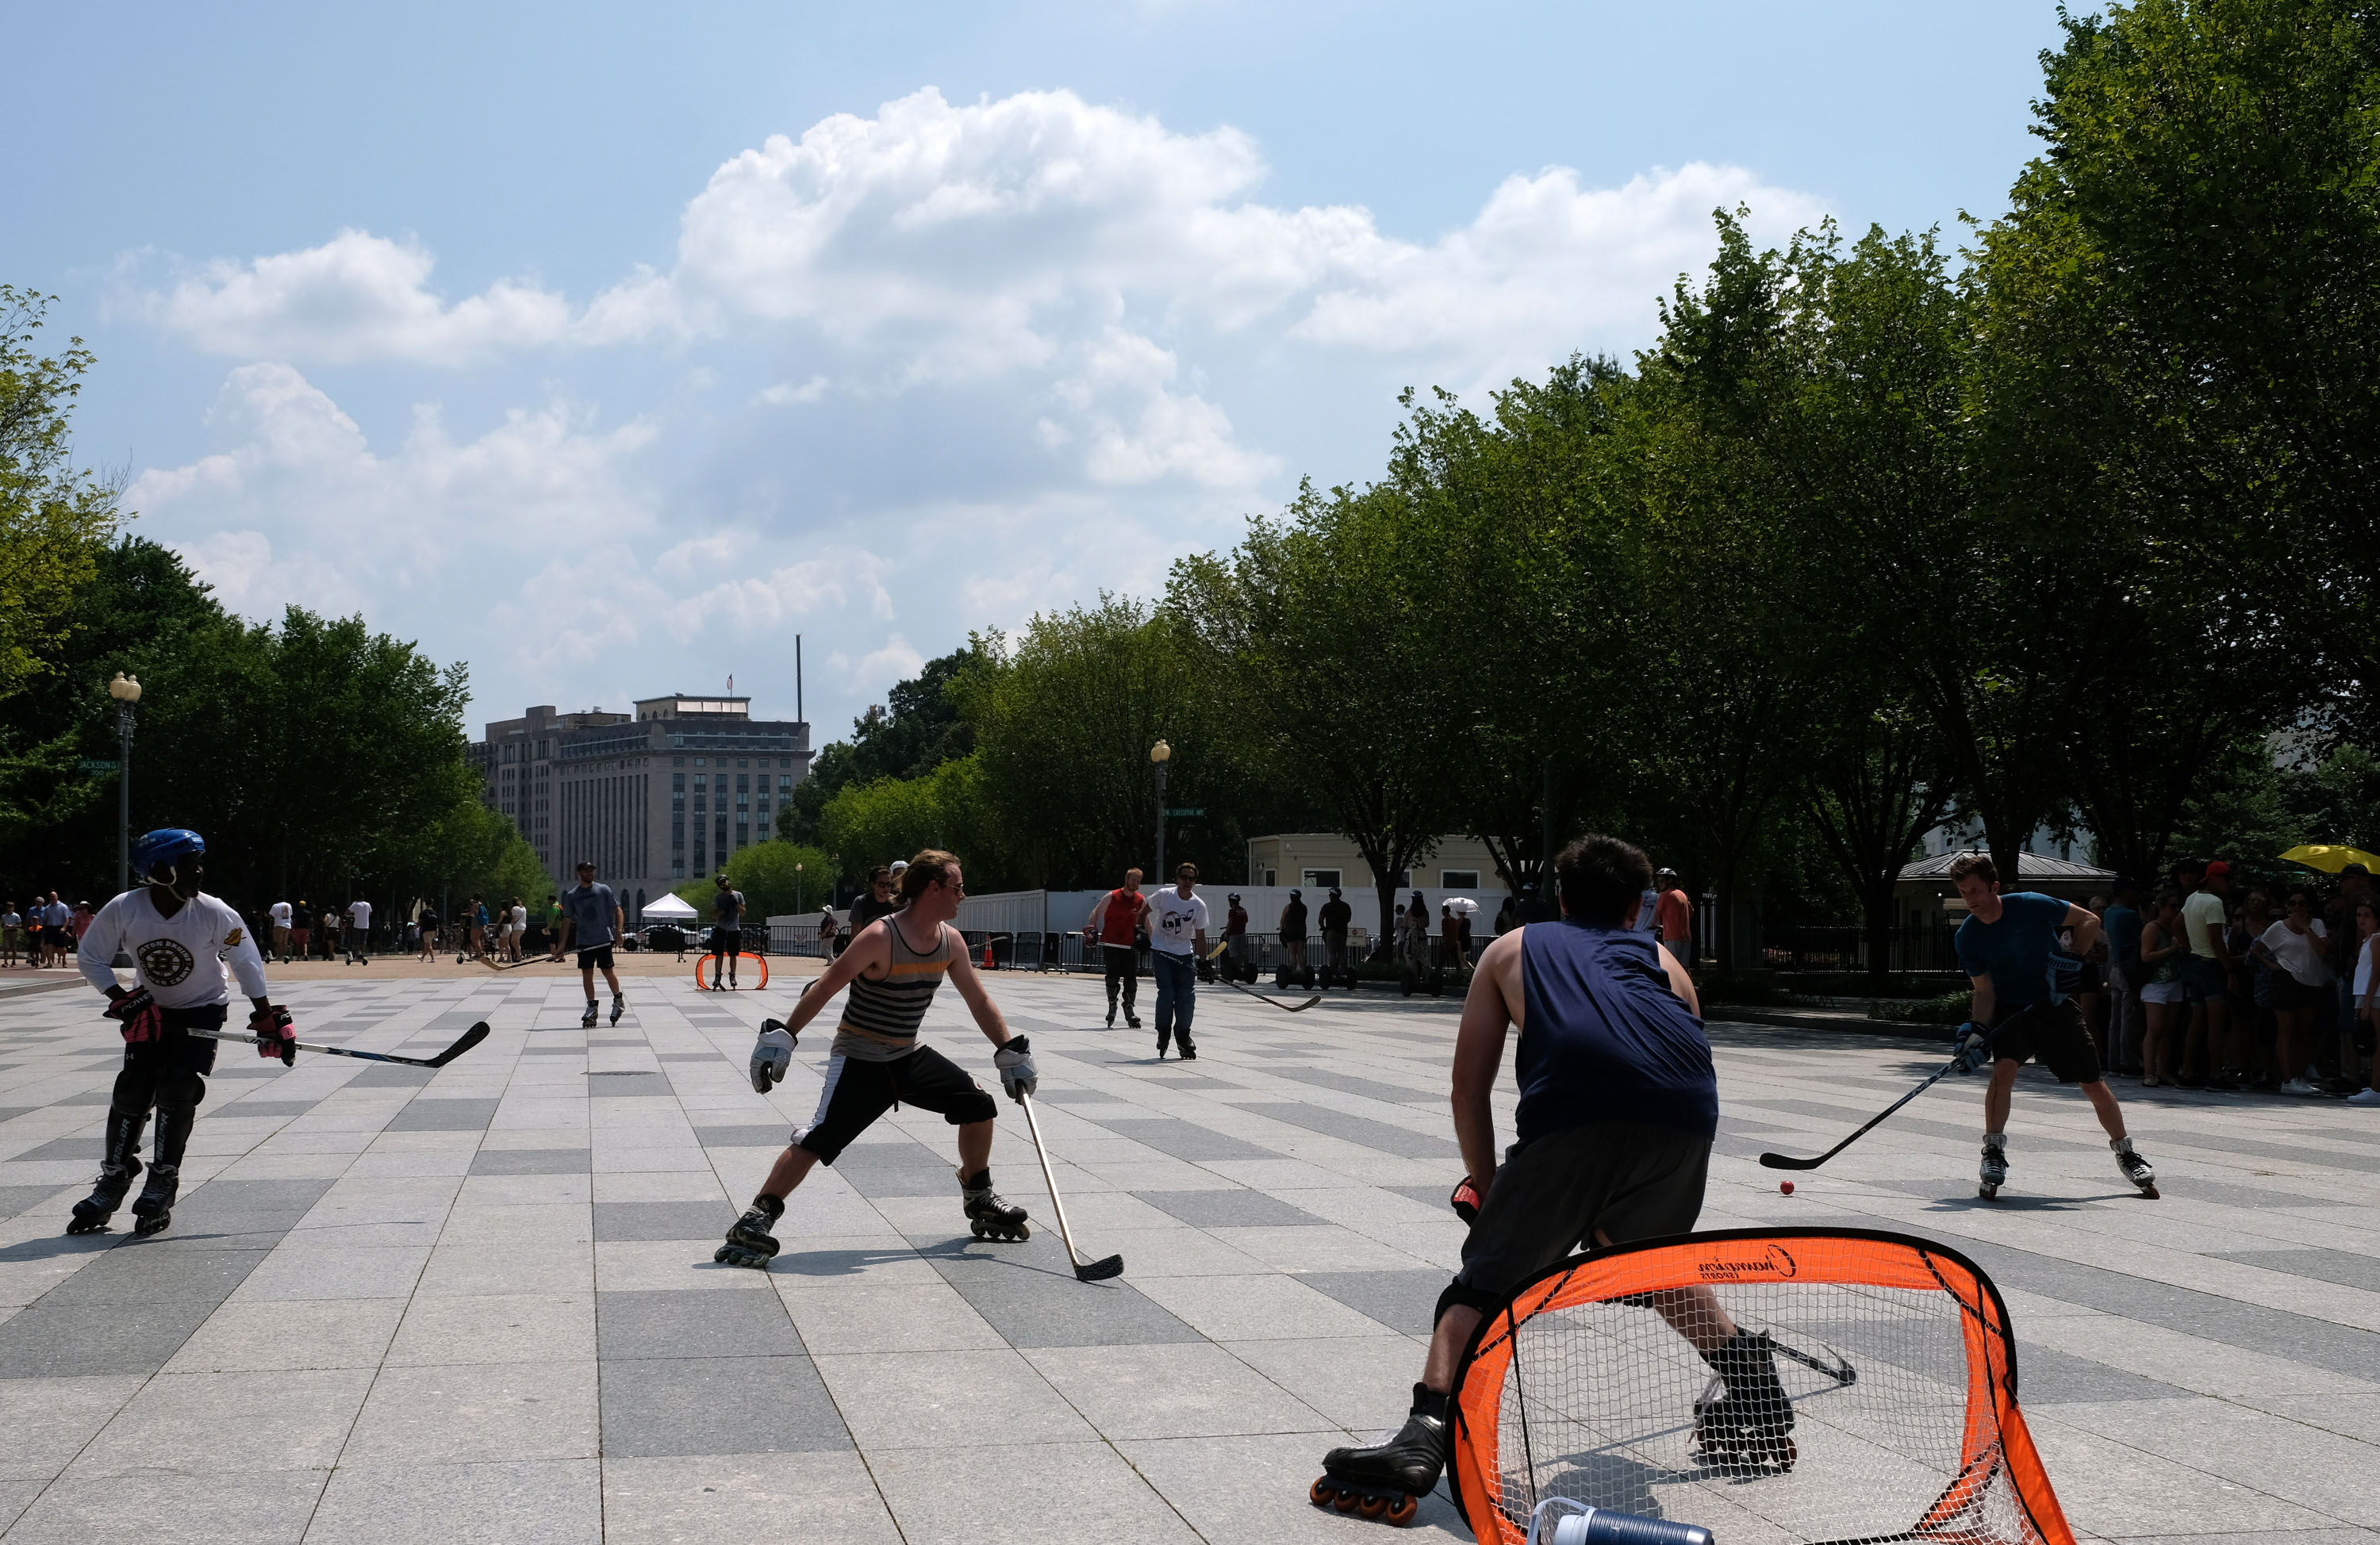 Street hockey players compete in a pick-up game near the White House during an excessive heat wave on July 20, 2019 in Washington, DC.